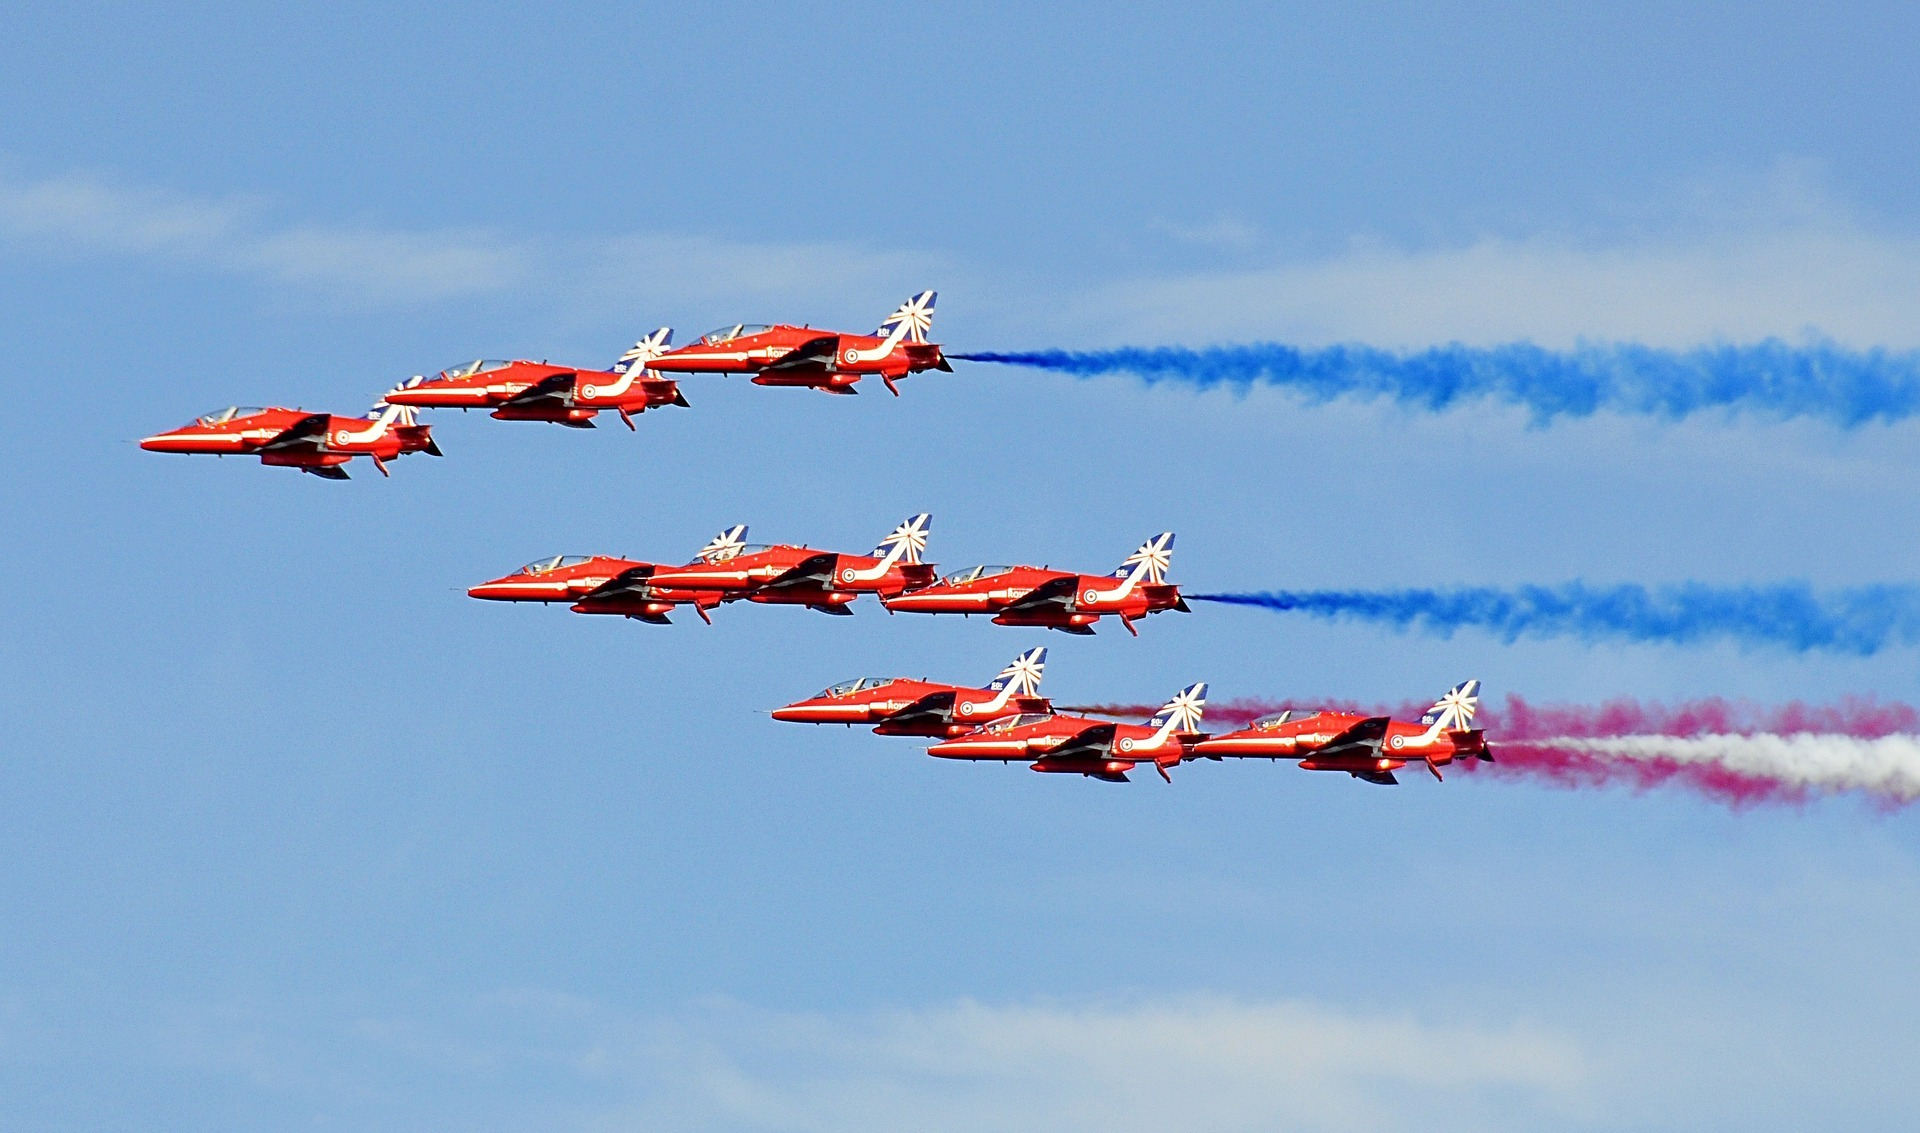 Red Arrows are expected to fly over the Fun Day